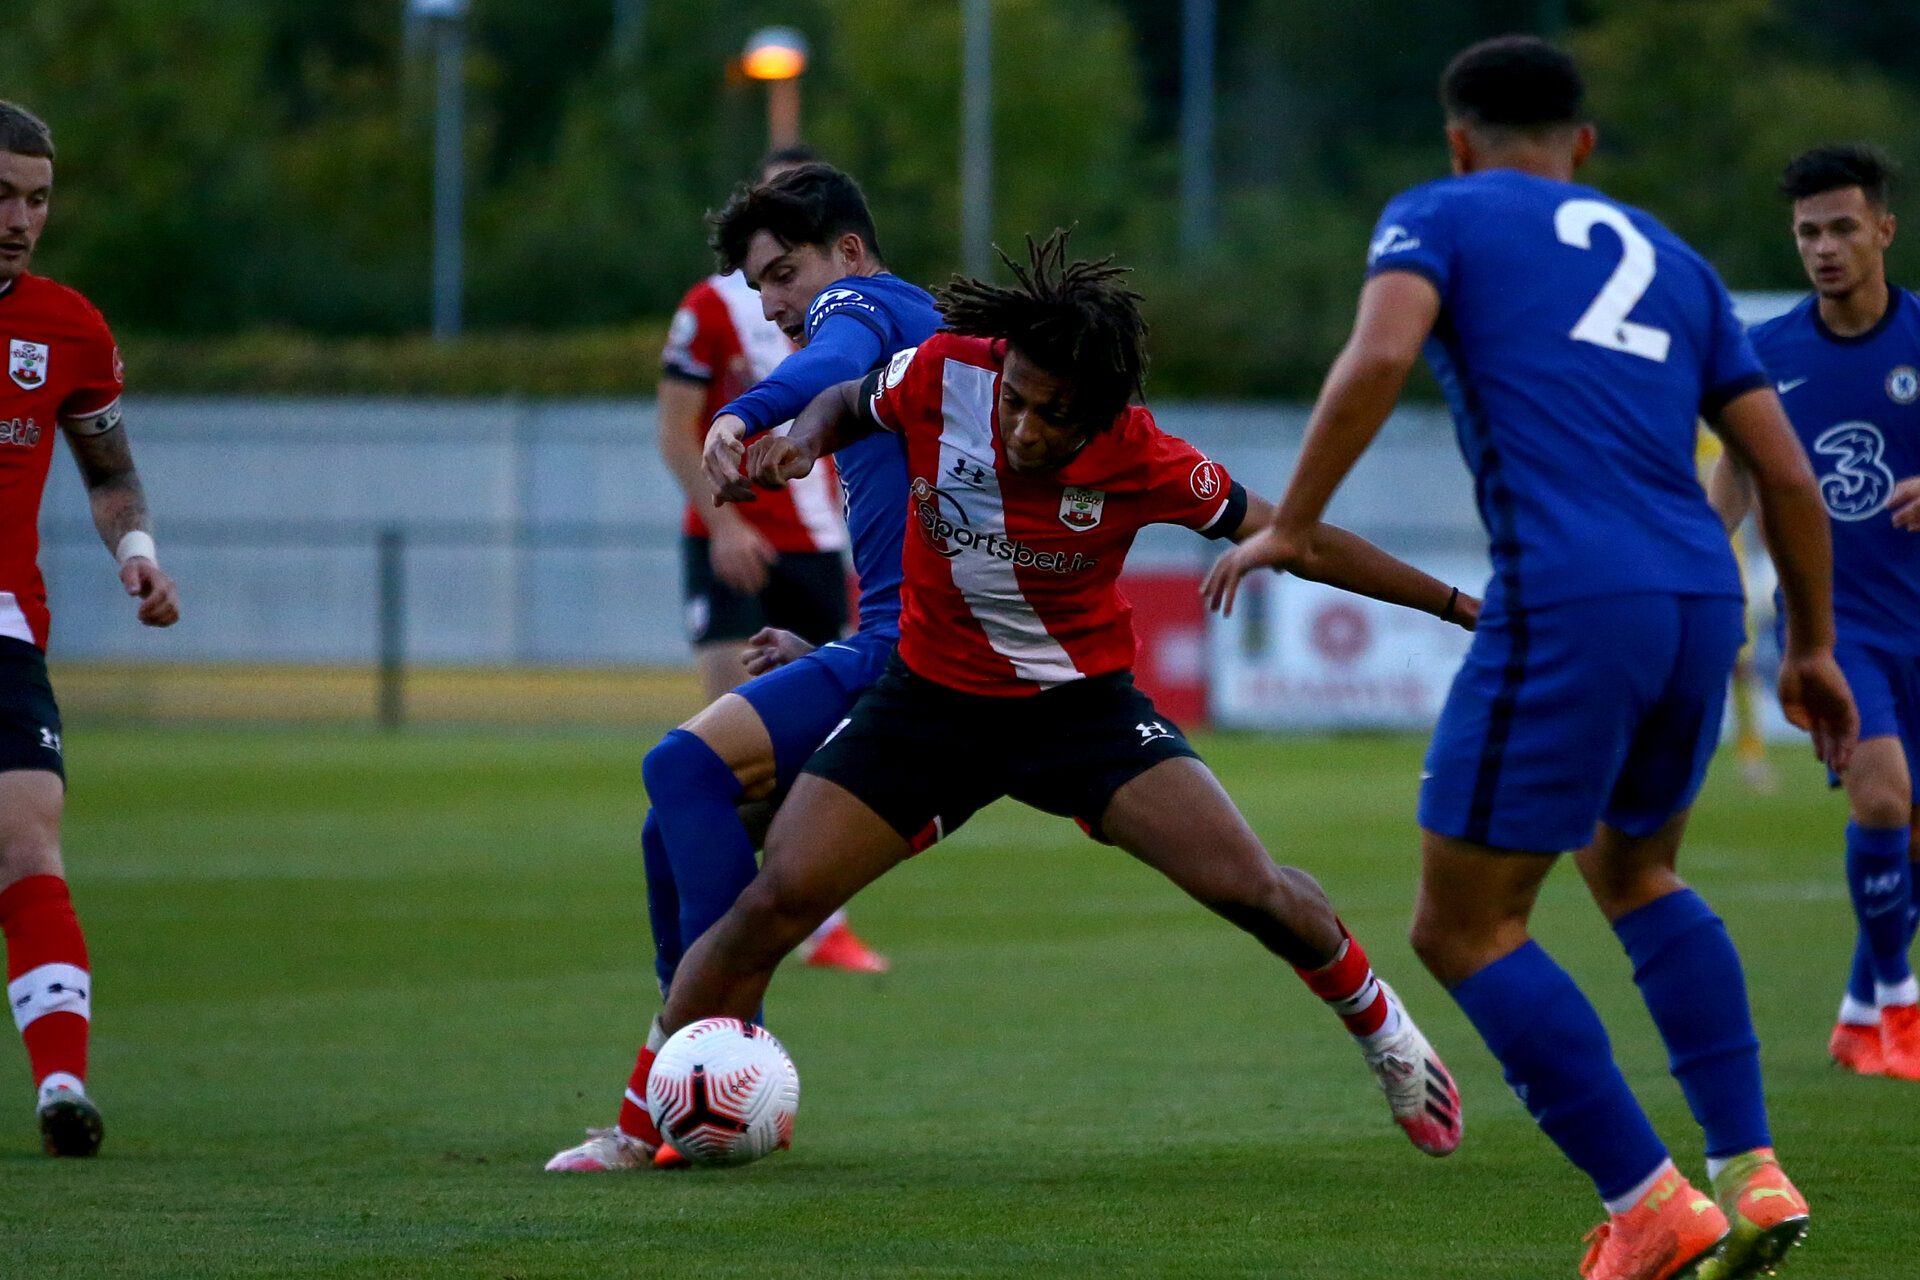 SOUTHAMPTON, ENGLAND - SEPTEMBER 18: Caleb Watts of Southampton during the Premier League 2 match between Southampton FC B Team and Chelsea FC at Snows Stadium on September 18, 2020 in Southampton, England. (Photo by Isabelle Field/Southampton FC via Getty Images)